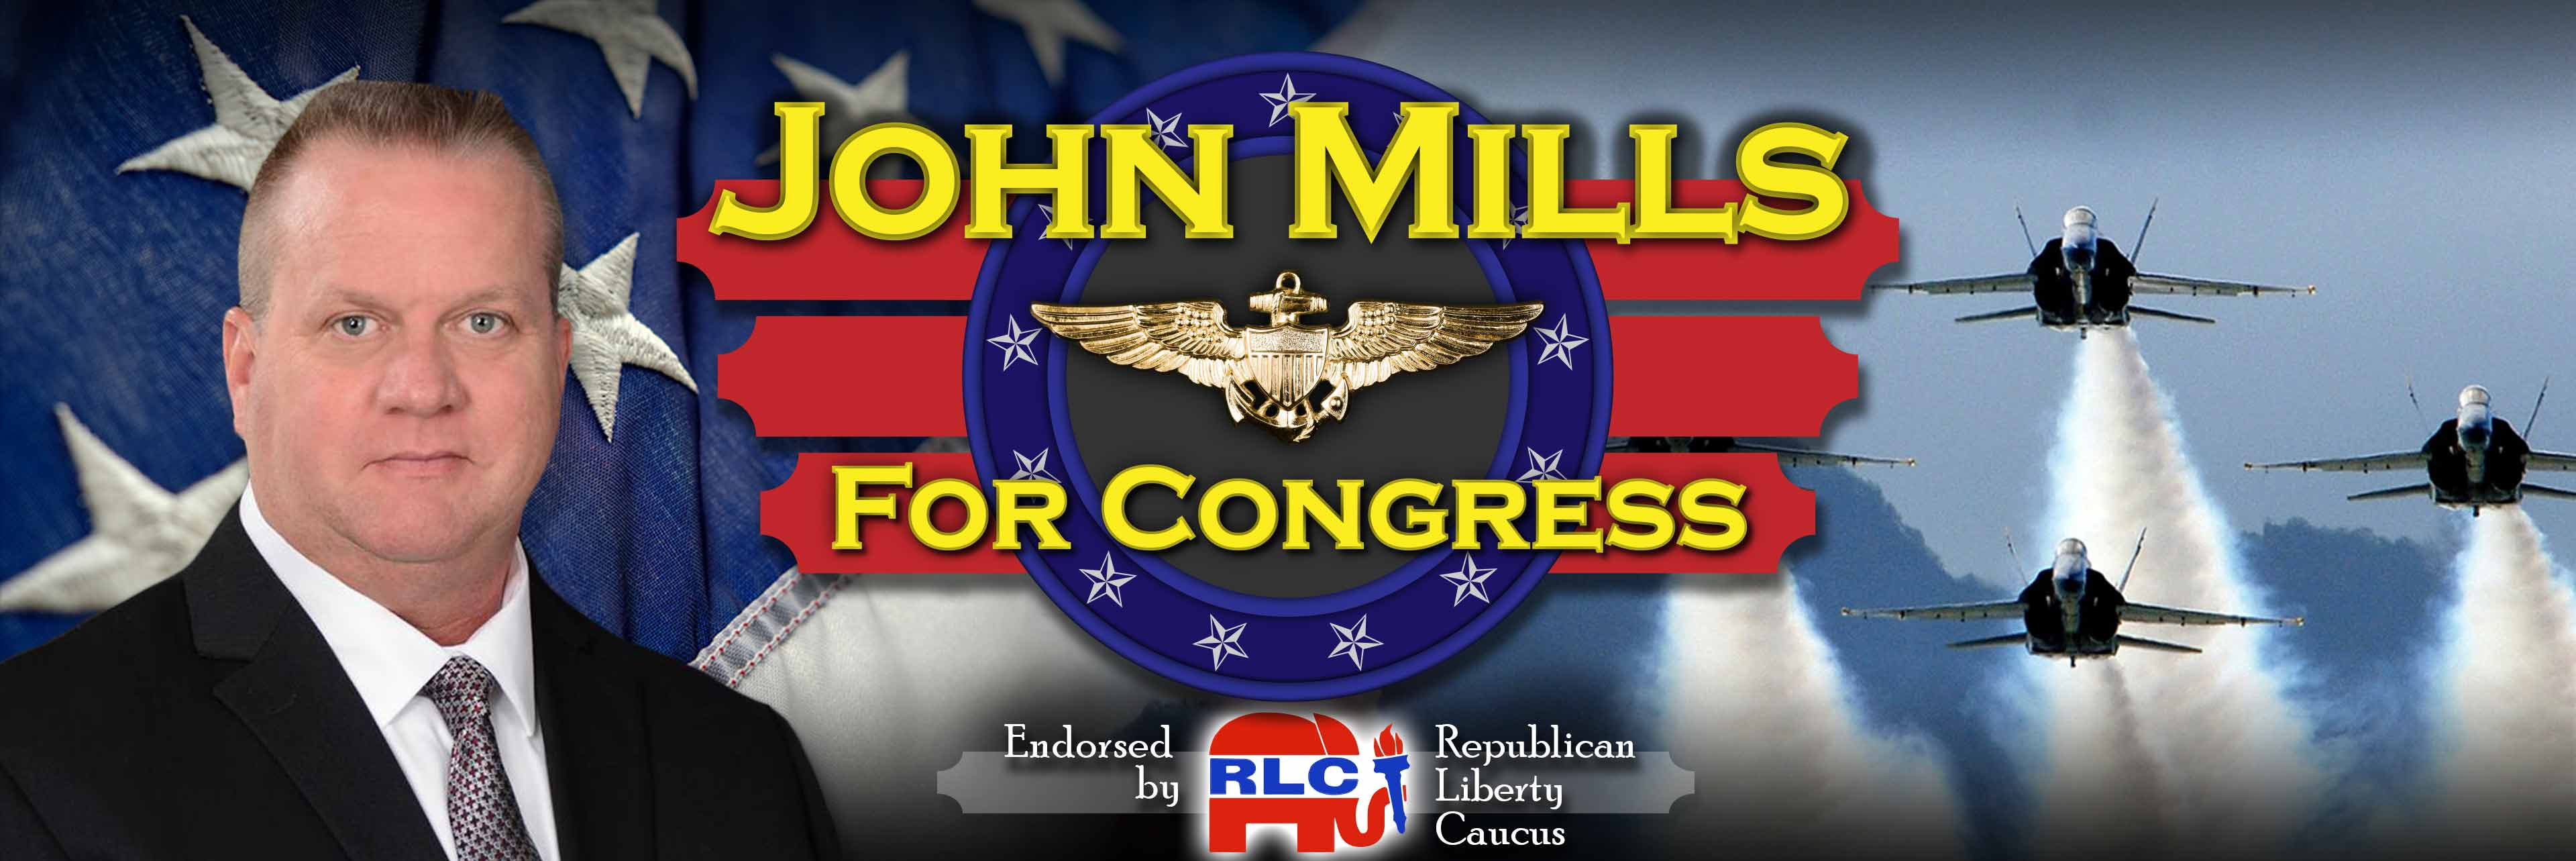 John Mills For Congress